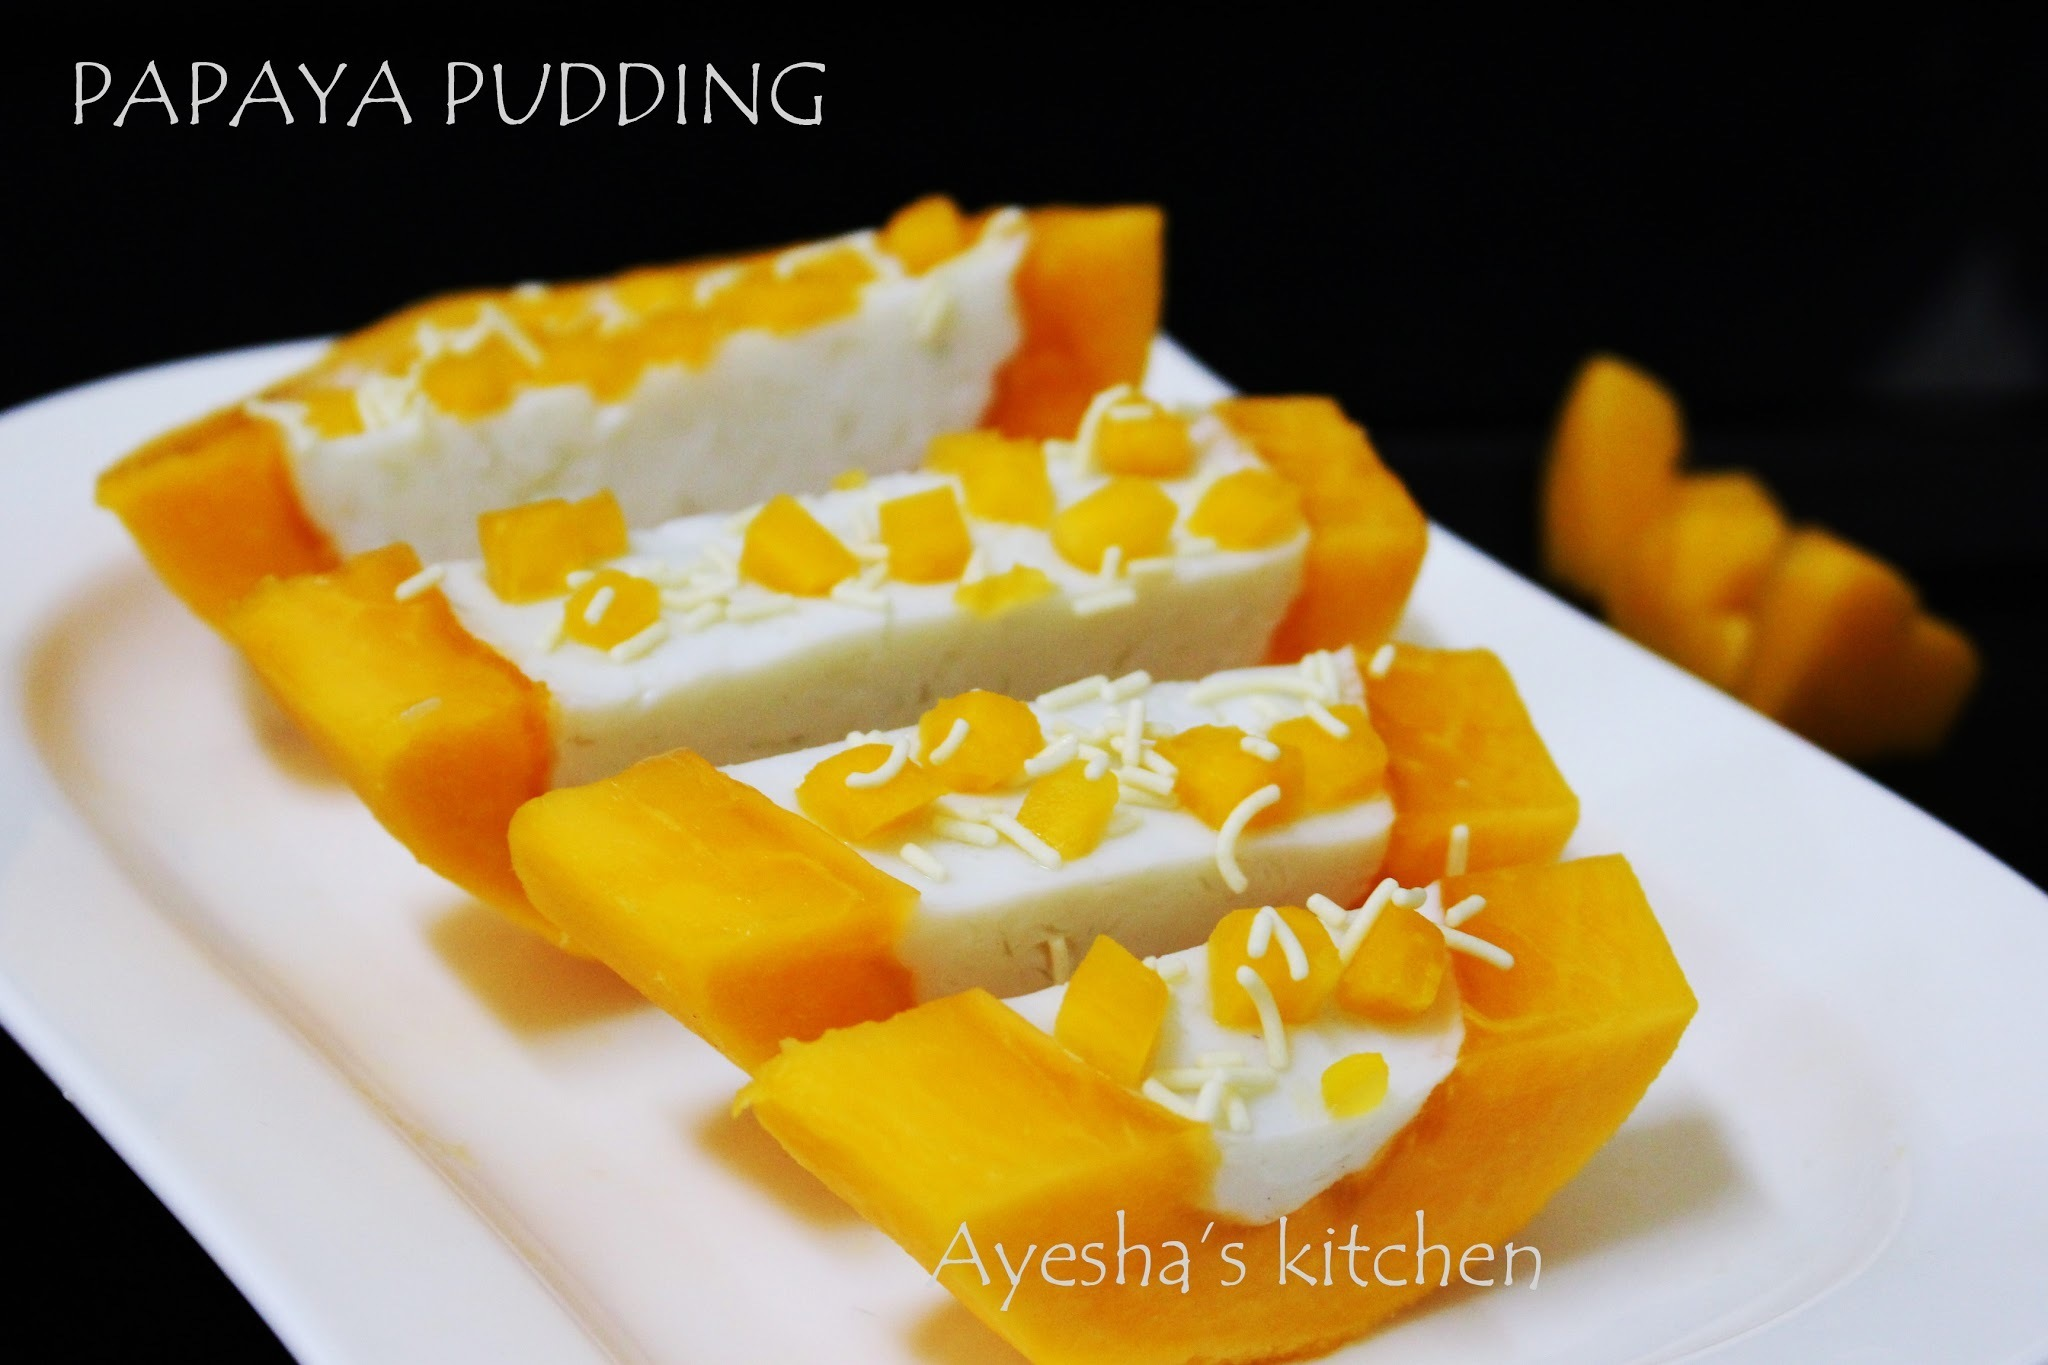 EASY DESSERT RECIPE - PAPAYA PUDDING